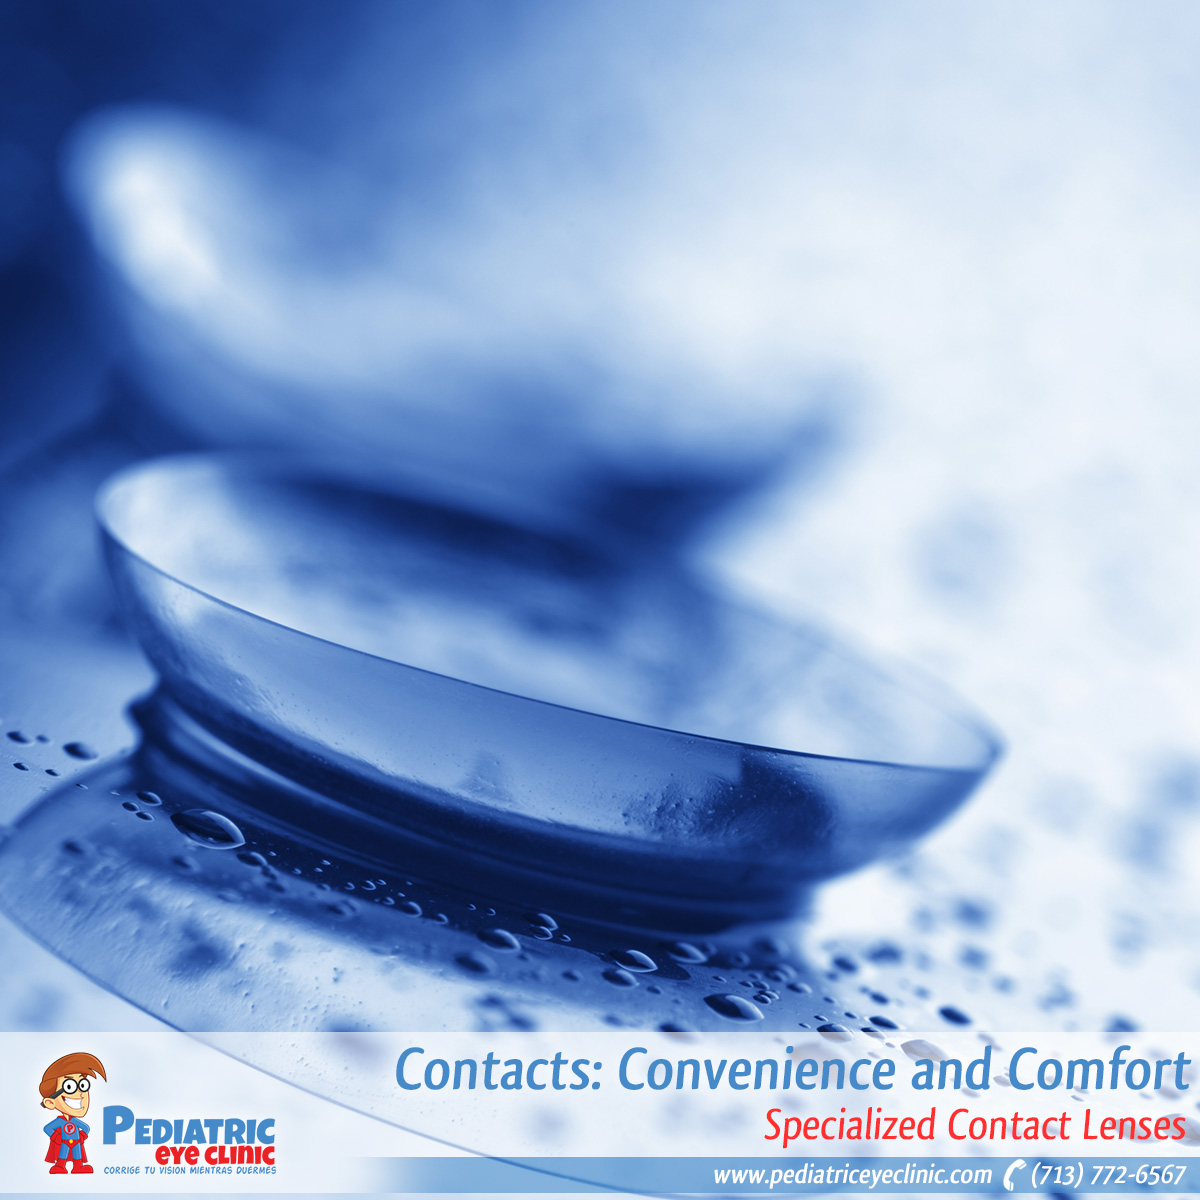 19 Specialized Contact Lenses